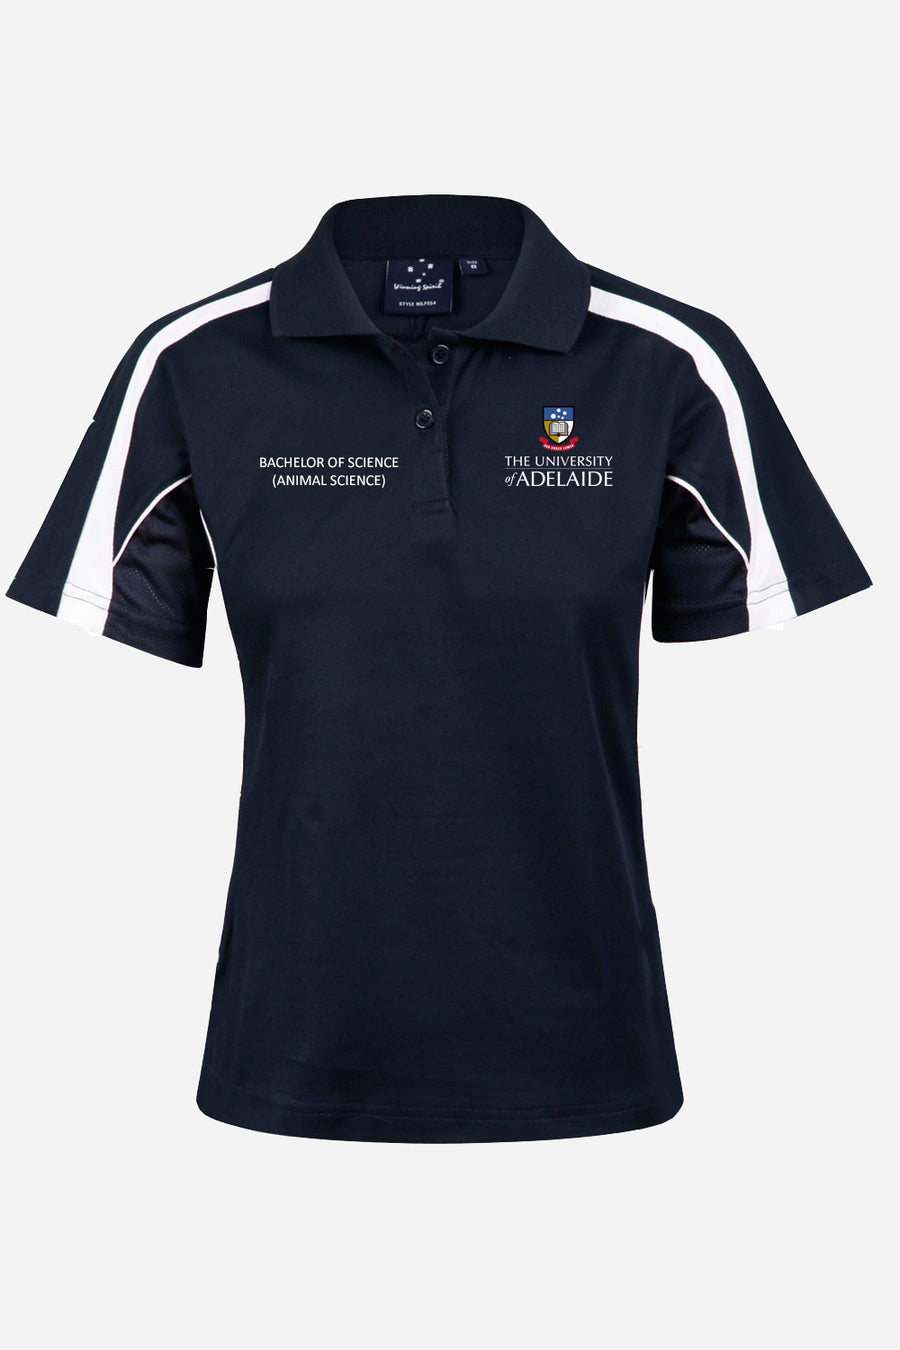 Bachelor of Science (Animal Sciences) Polo Women's